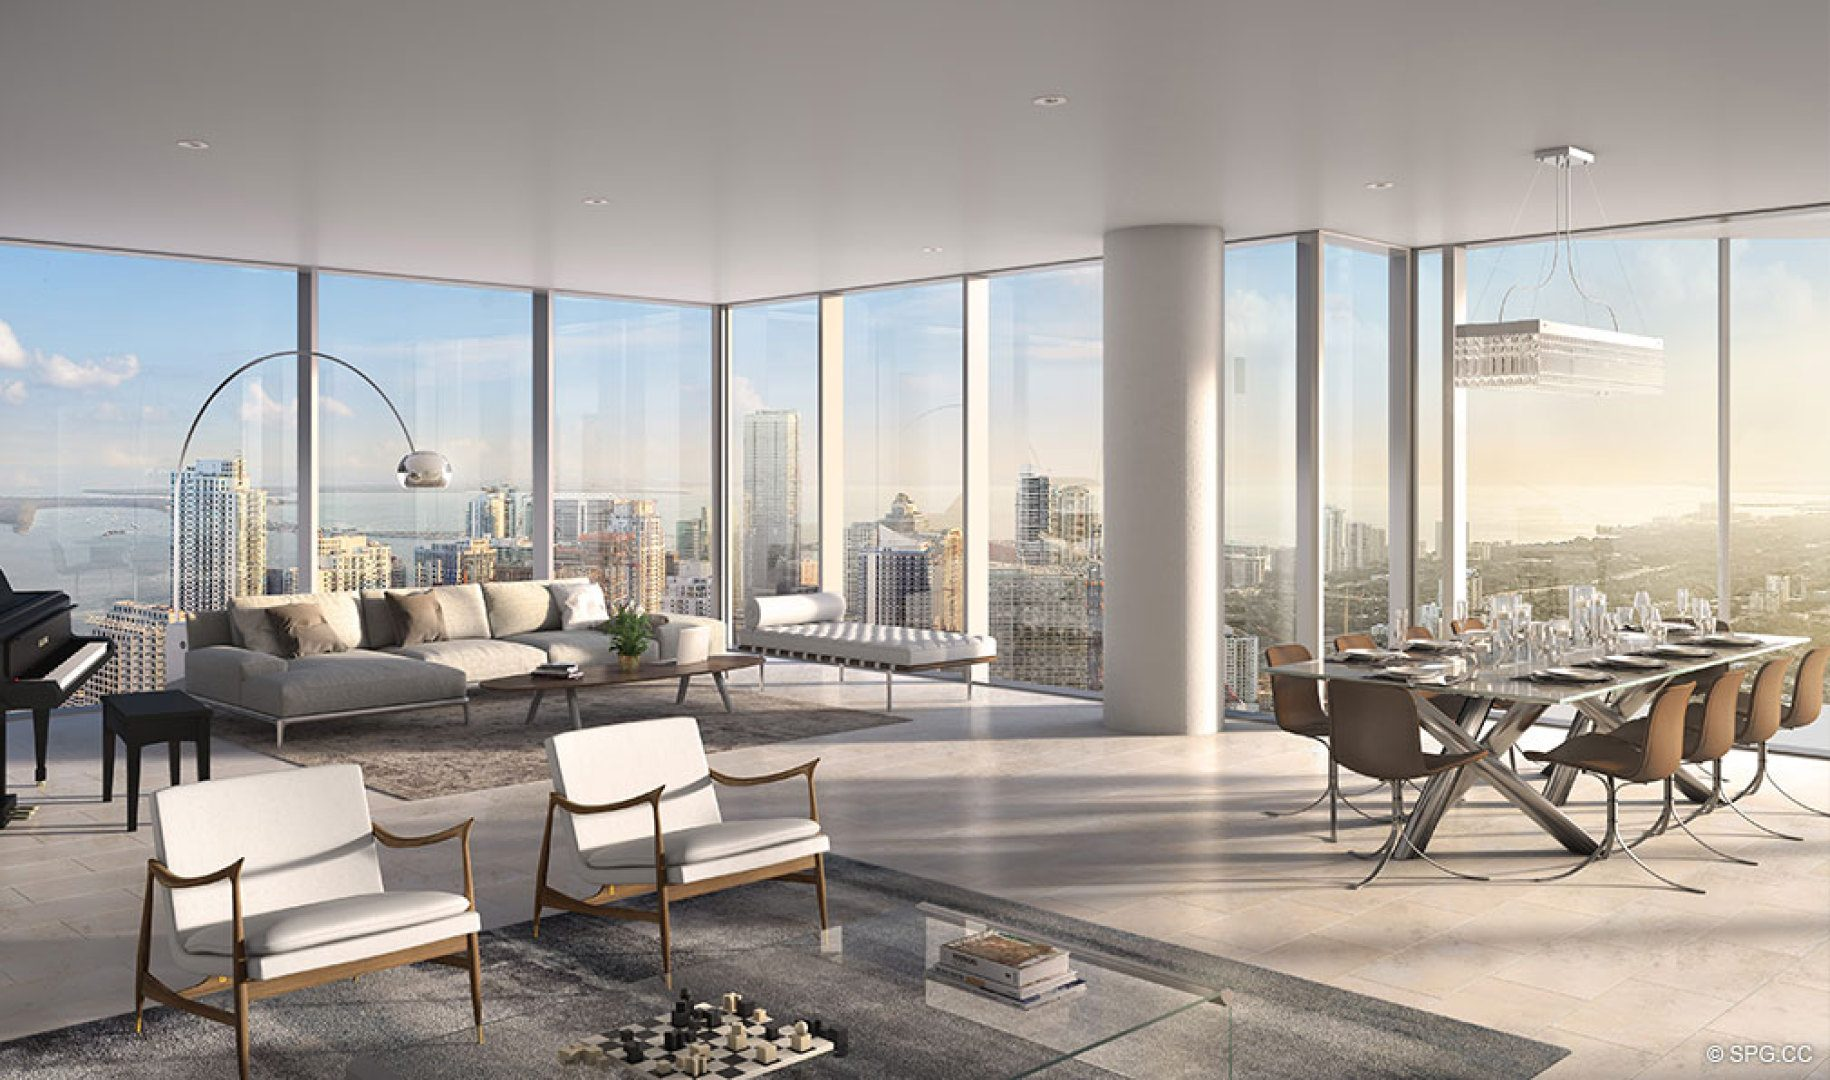 Floor to Ceiling Glass Residences at One River Point, Luxury Waterfront Condos in Miami, Florida 33130